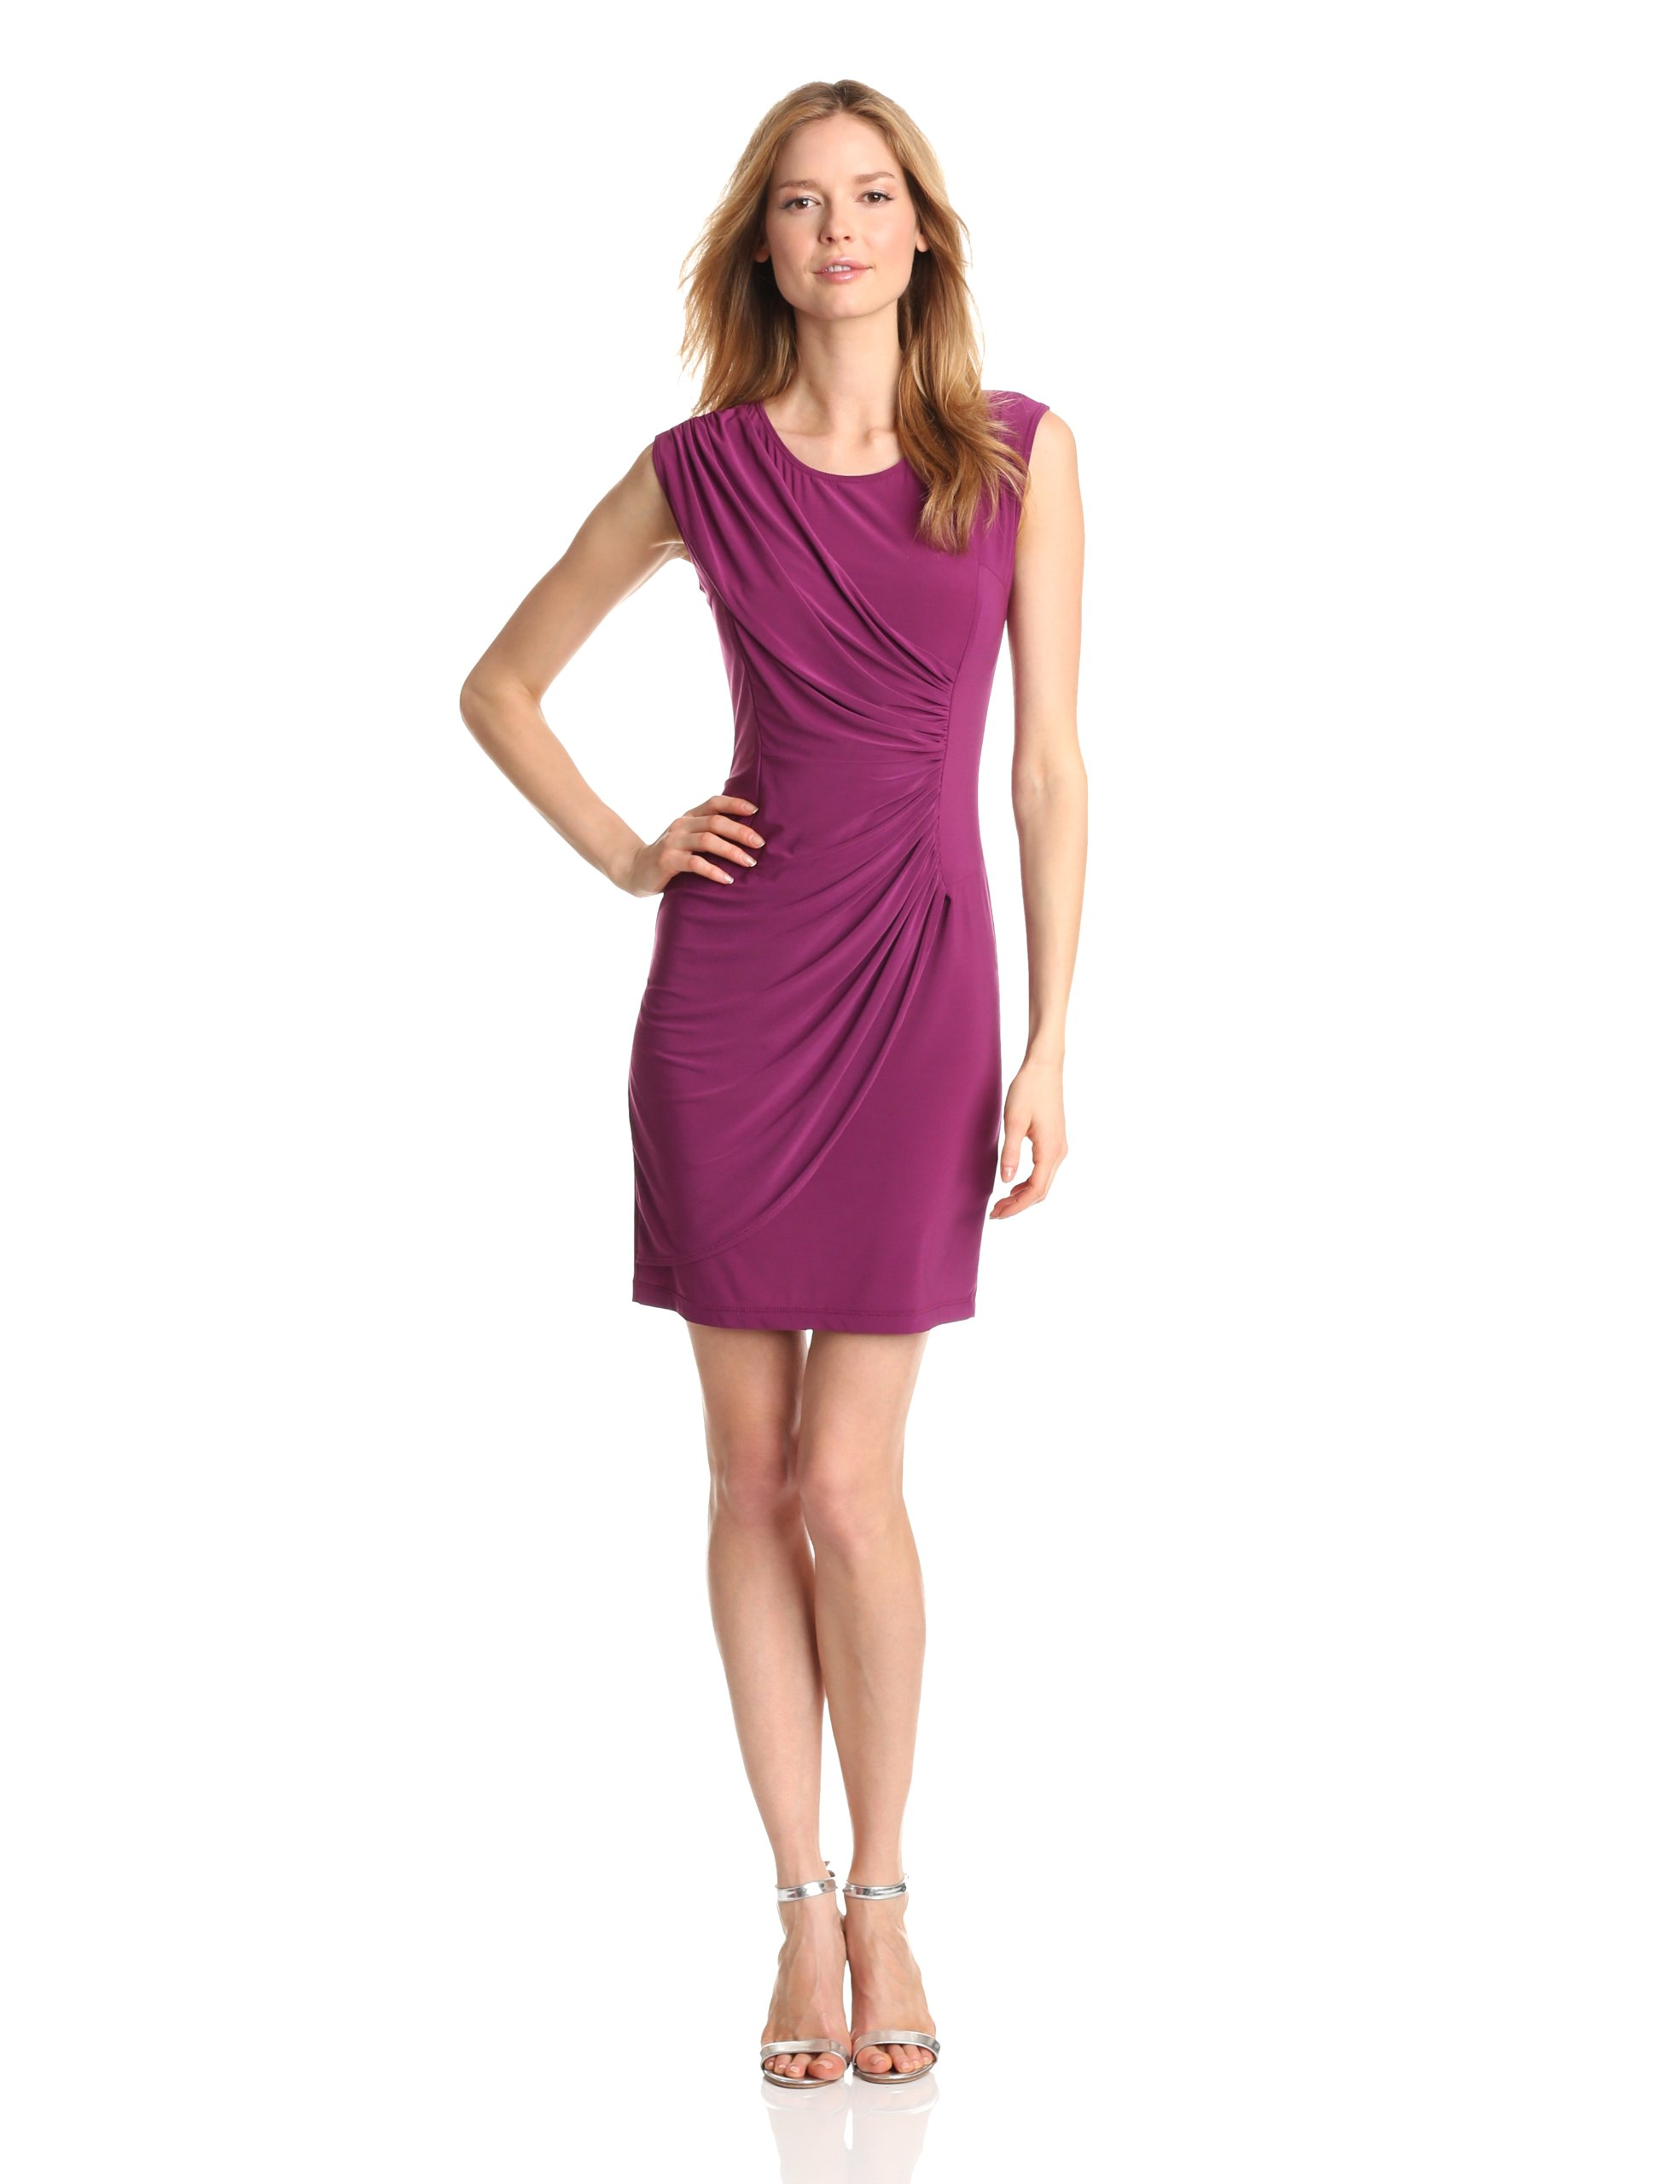 b0e4f8c78eecf Women s Dresses Collection  Cocktail Dresses for Women